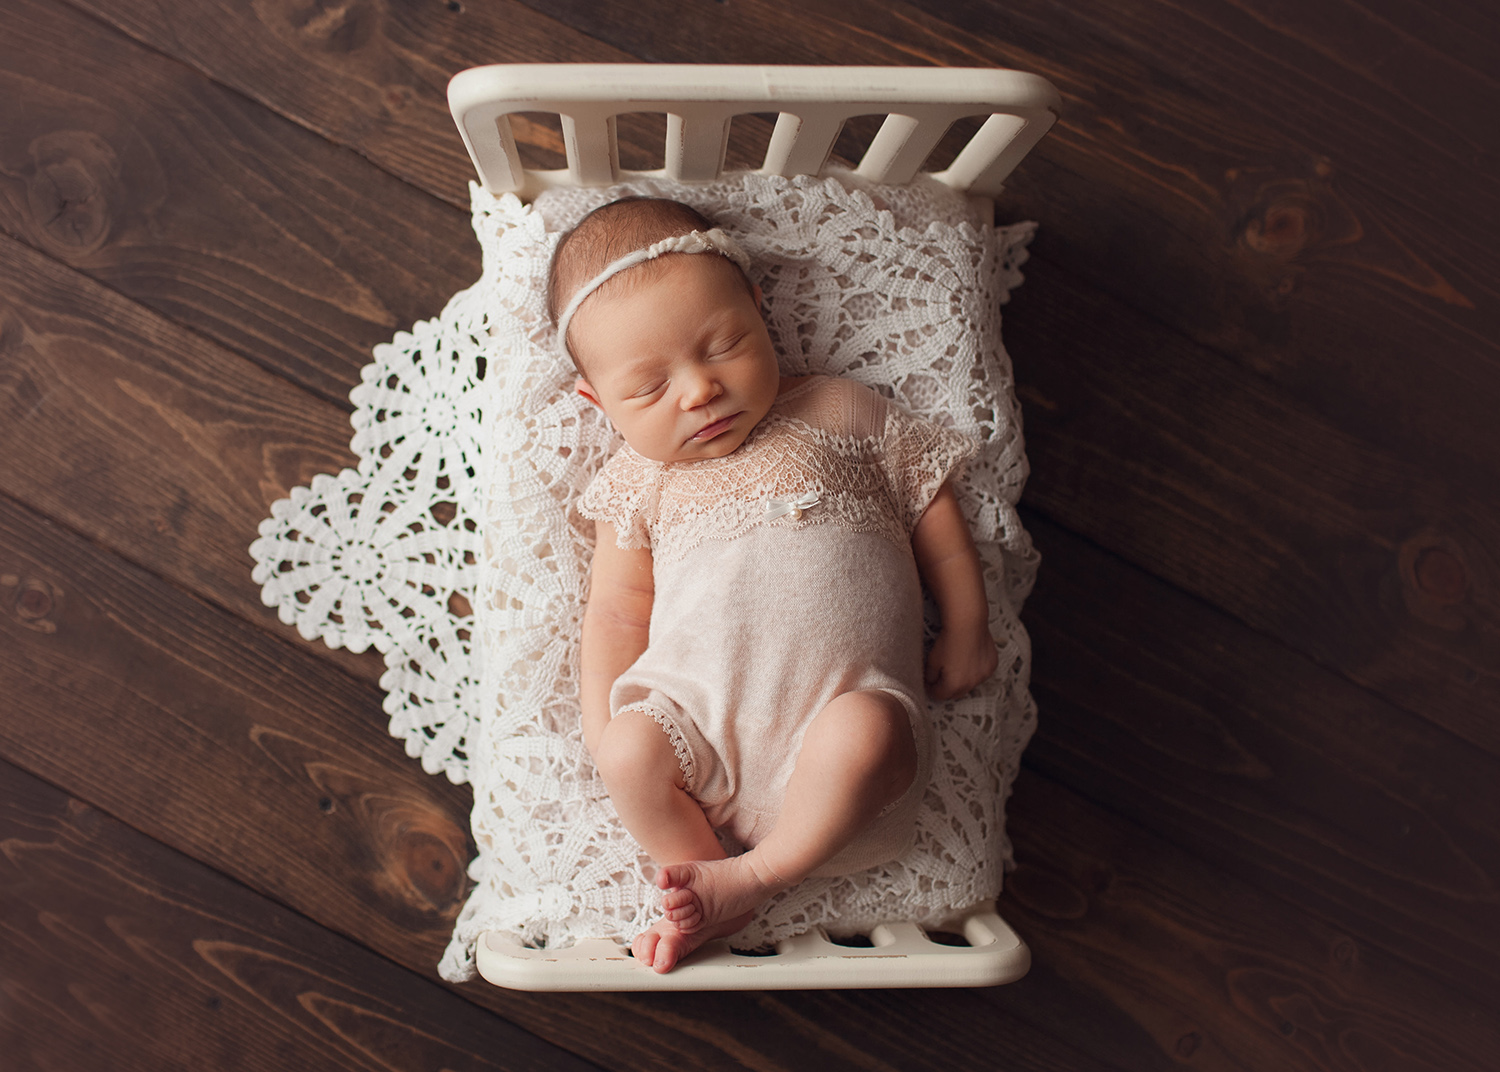 Chelsey-Hill-newborn-photography-breakout-24